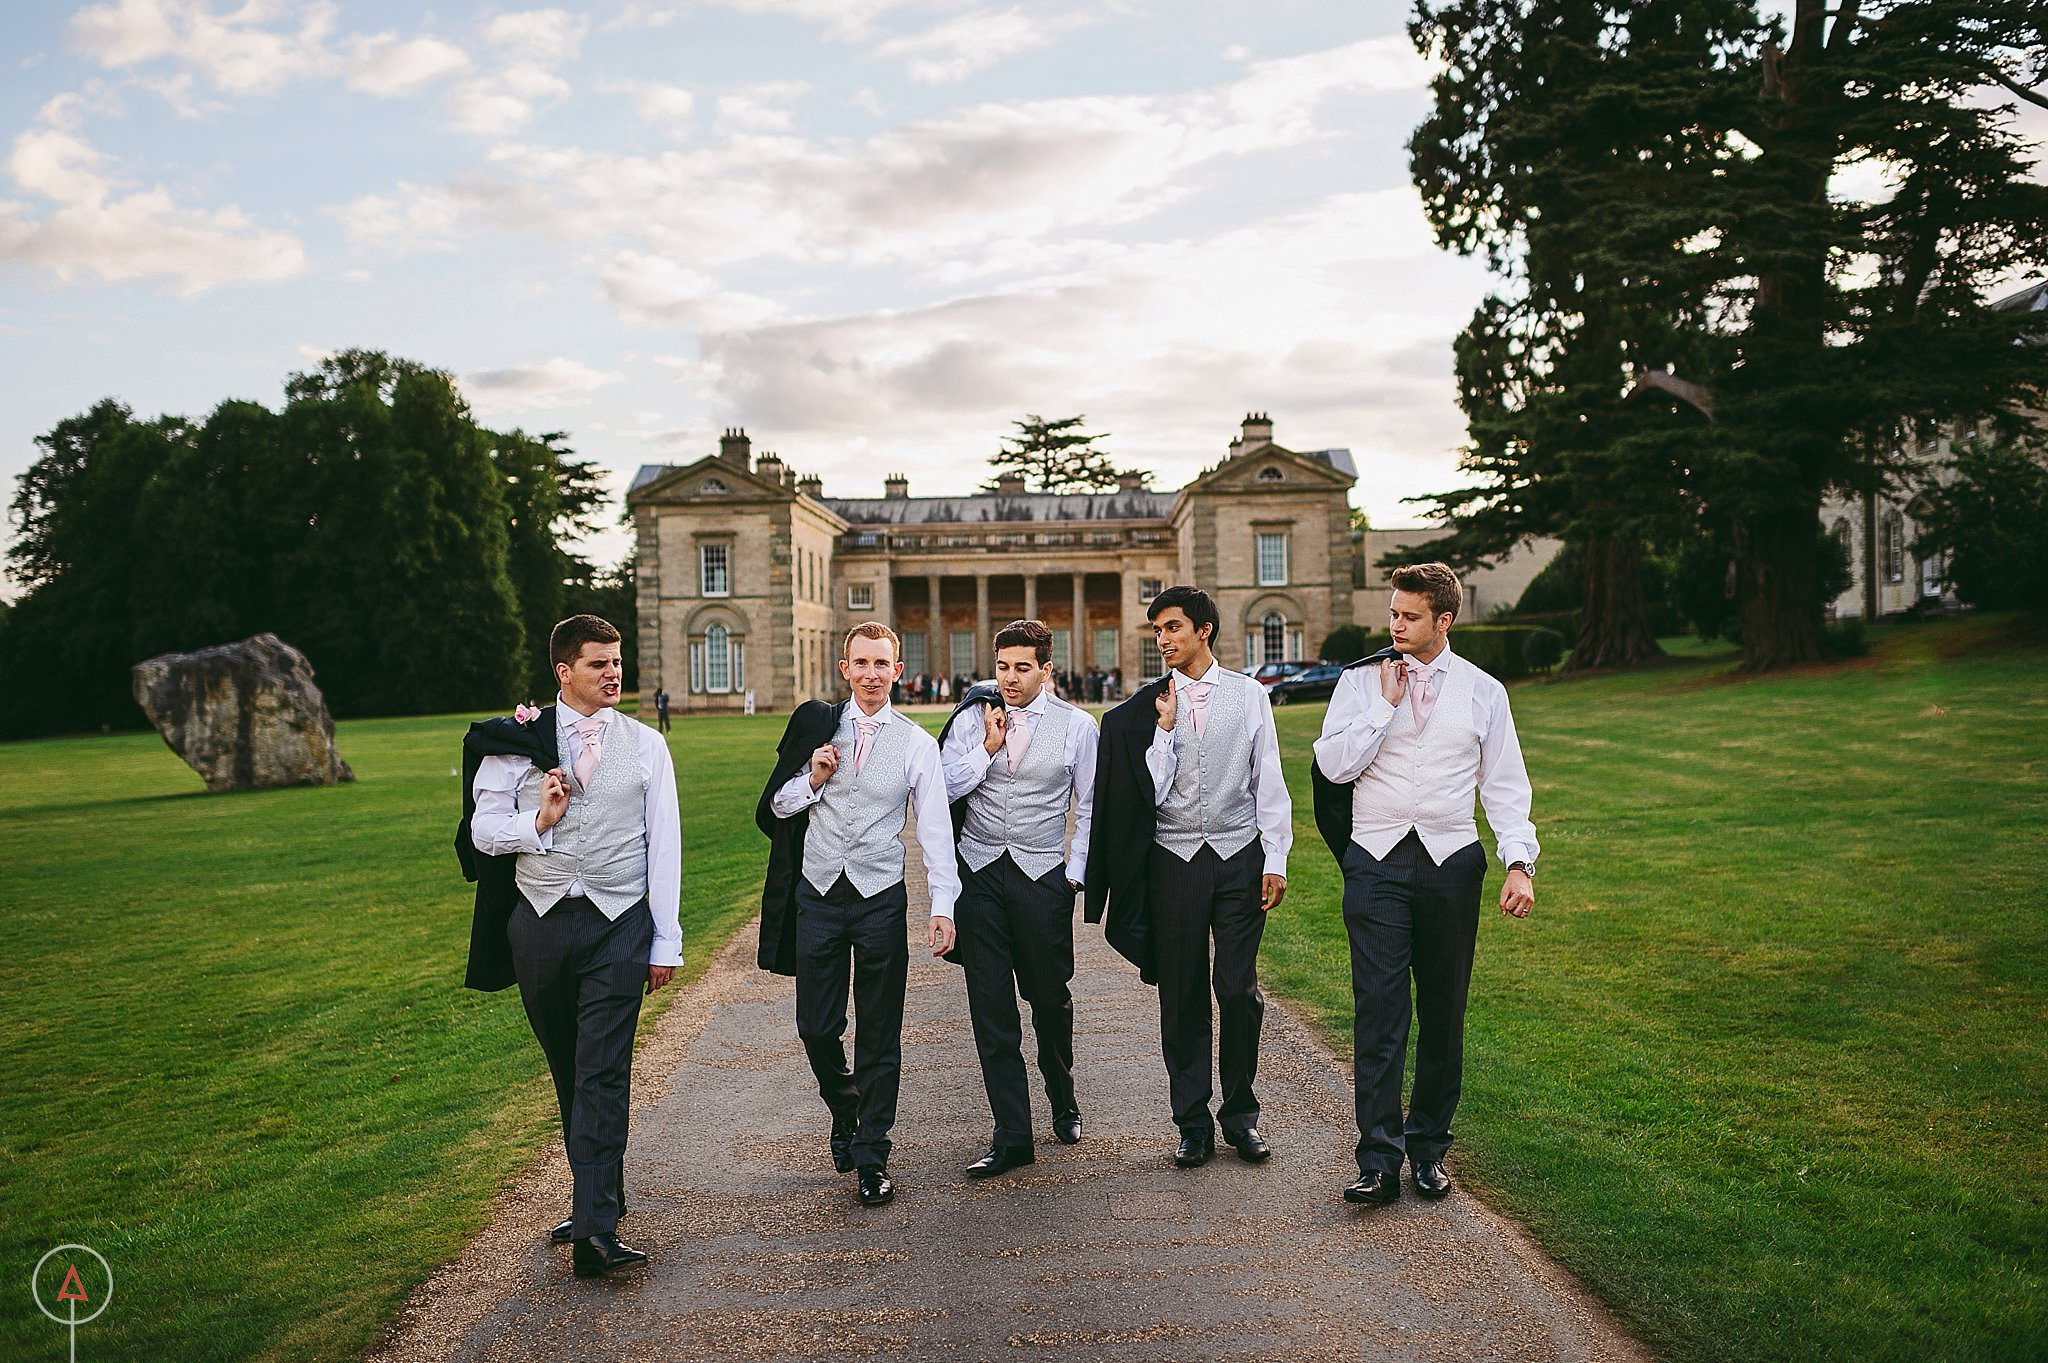 compton-verney-wedding-photographer-birmingham_1087